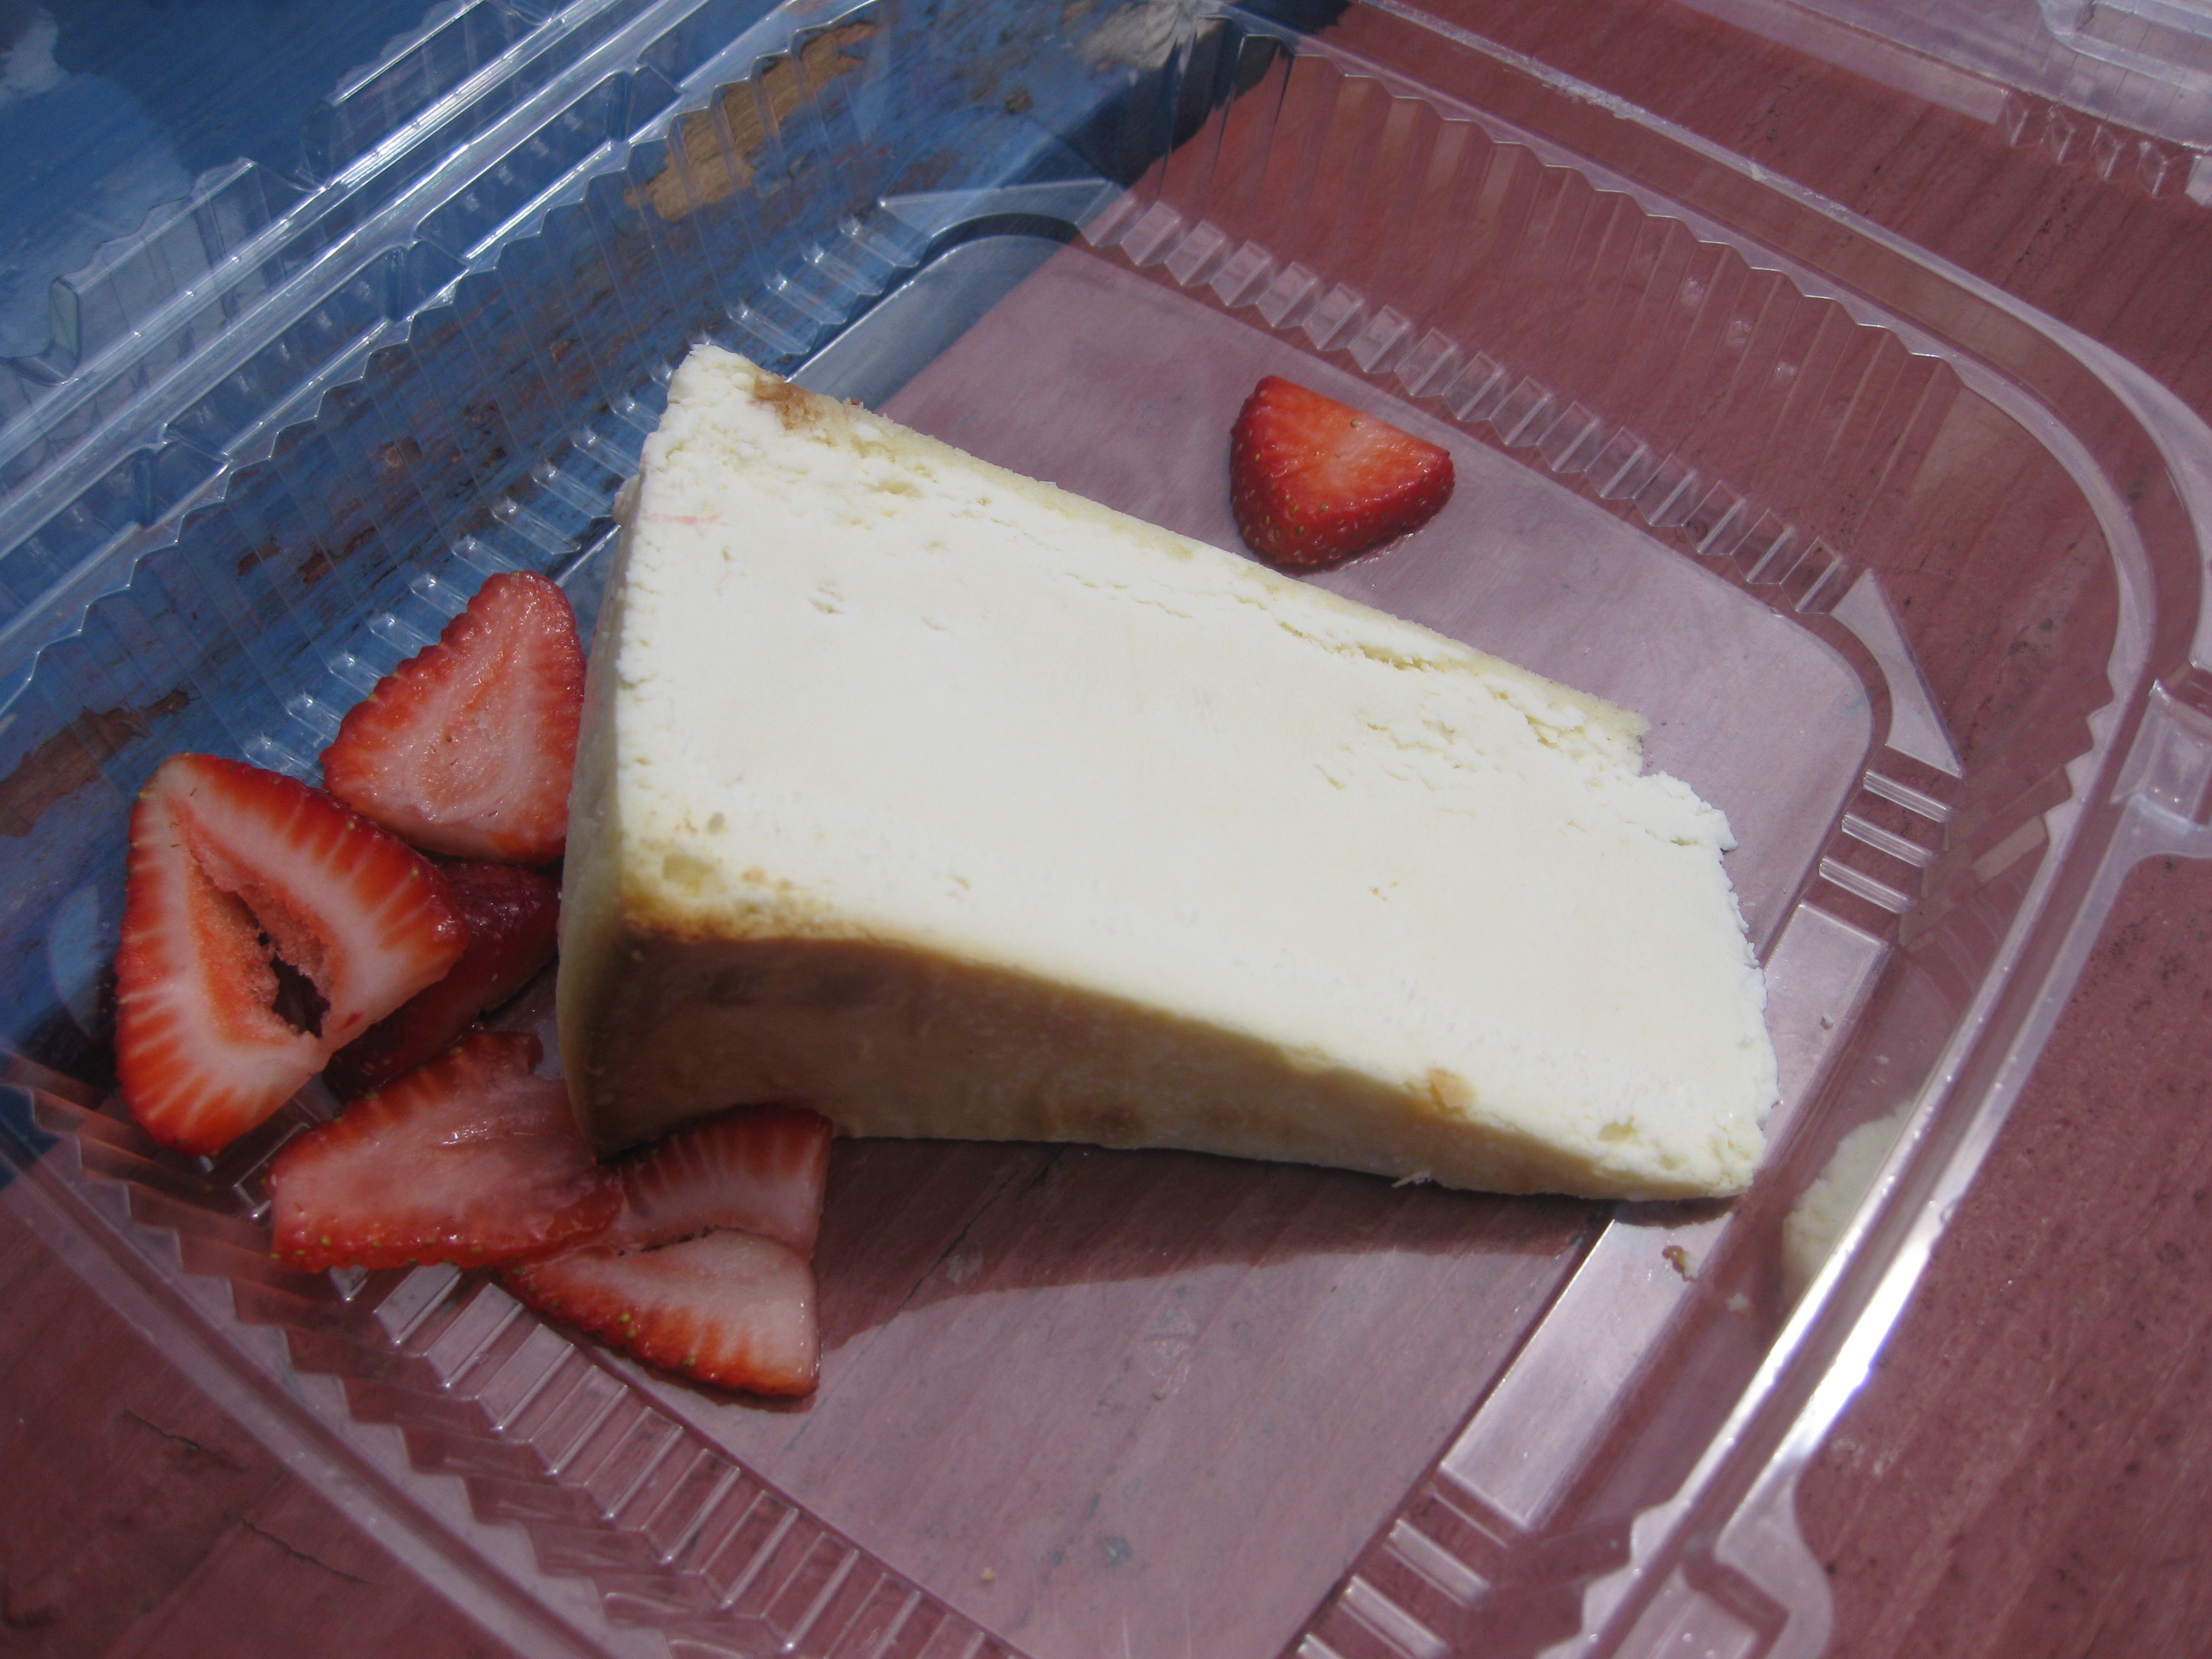 Junior's cheesecake